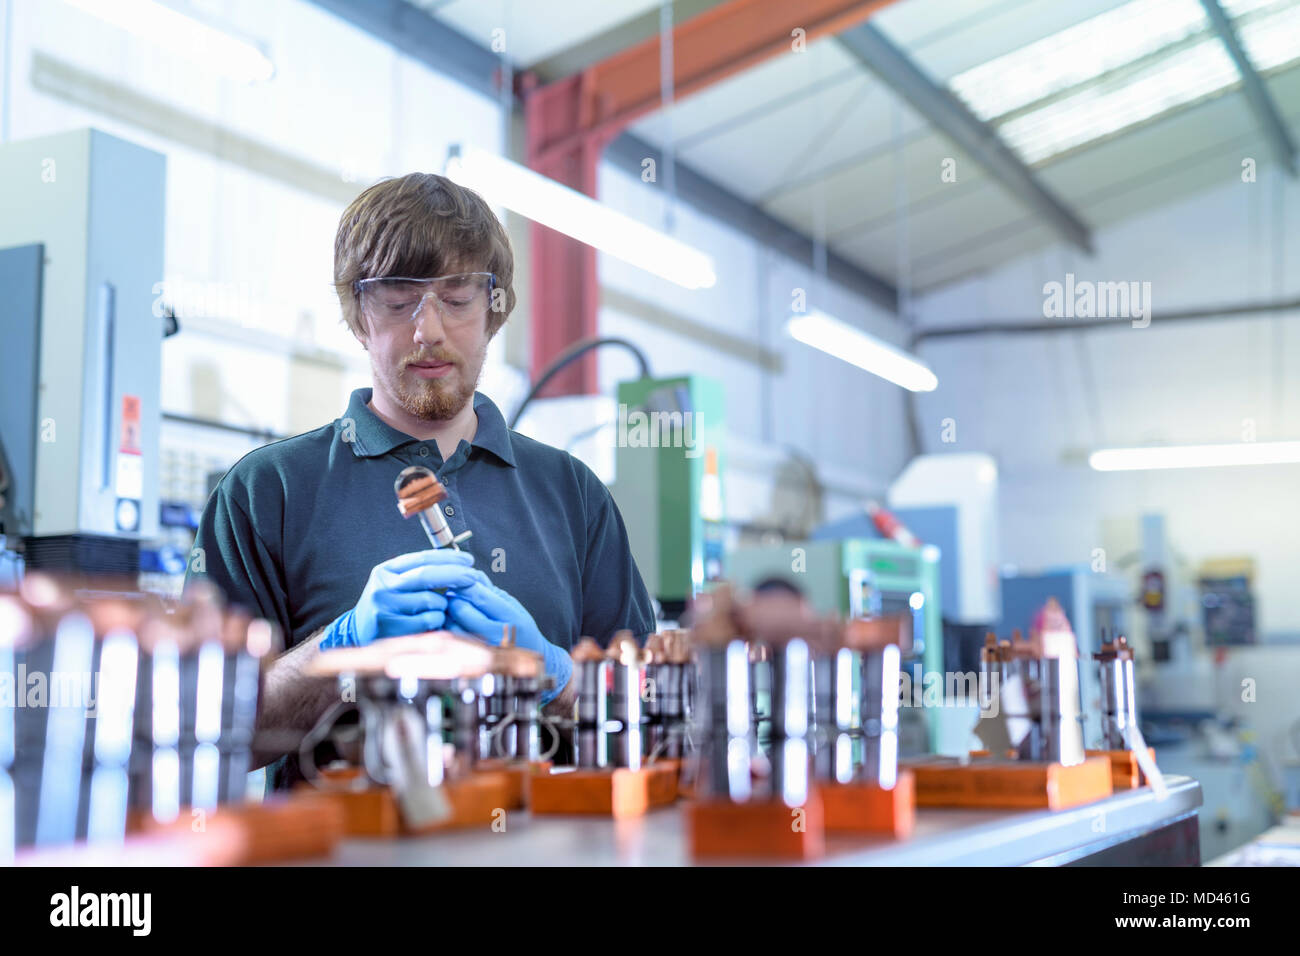 Engineer working with electrodes for electrical discharge machine in precision engineering factory - Stock Image